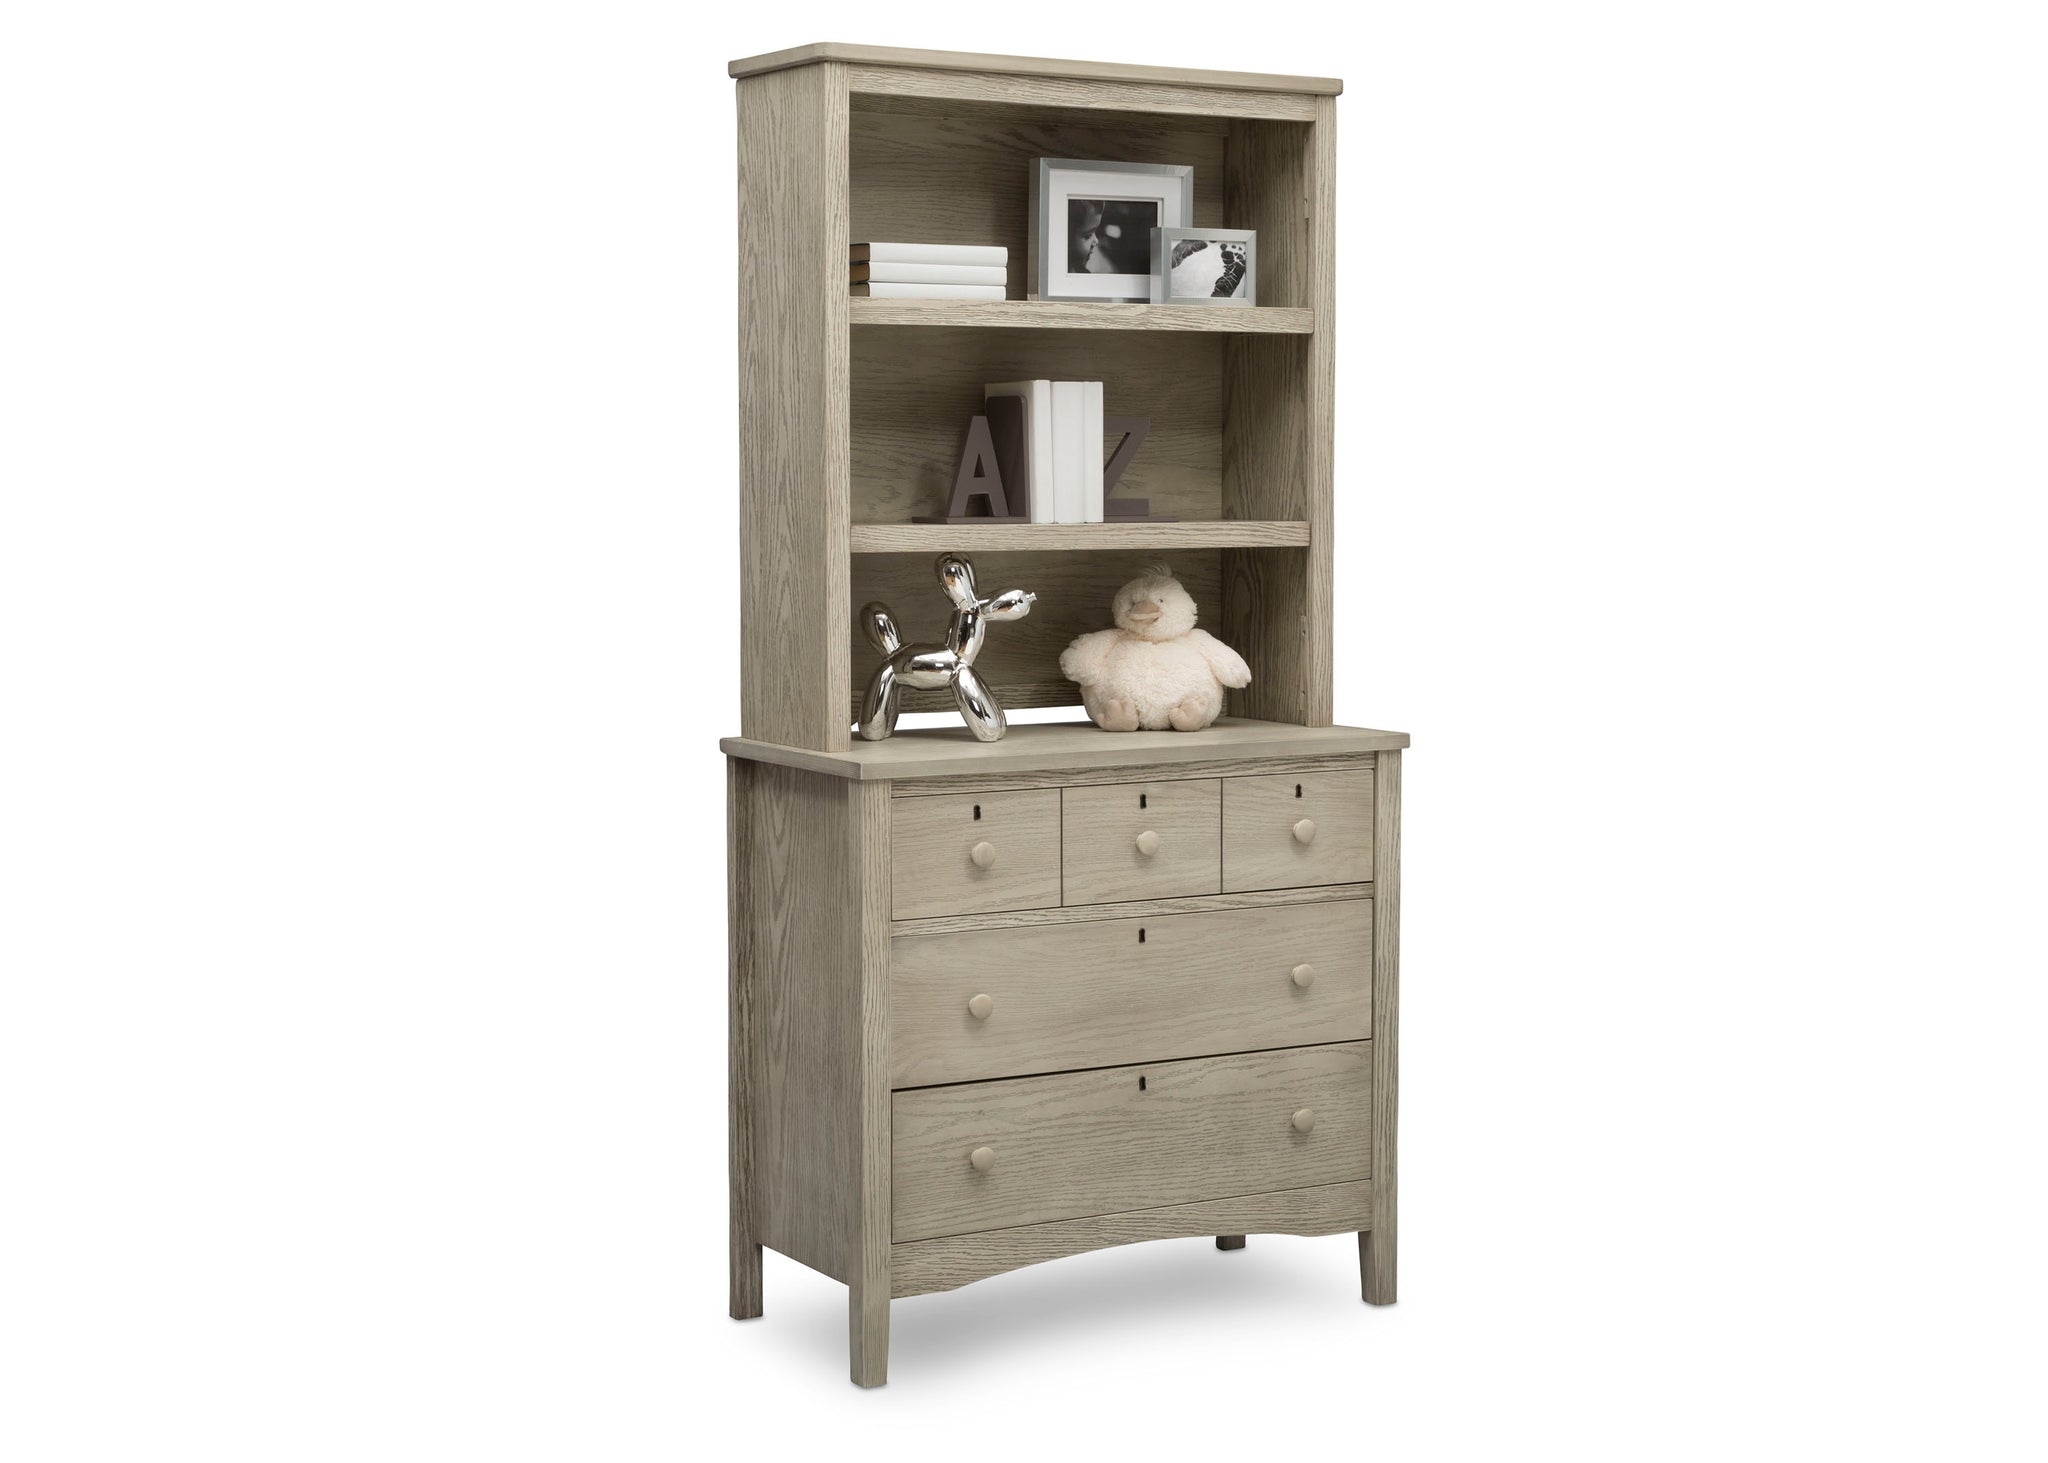 Delta Children Textured Limestone (1340) Farmhouse 3 Drawer Dresser with Changing Top, Right Silo View with Hutch